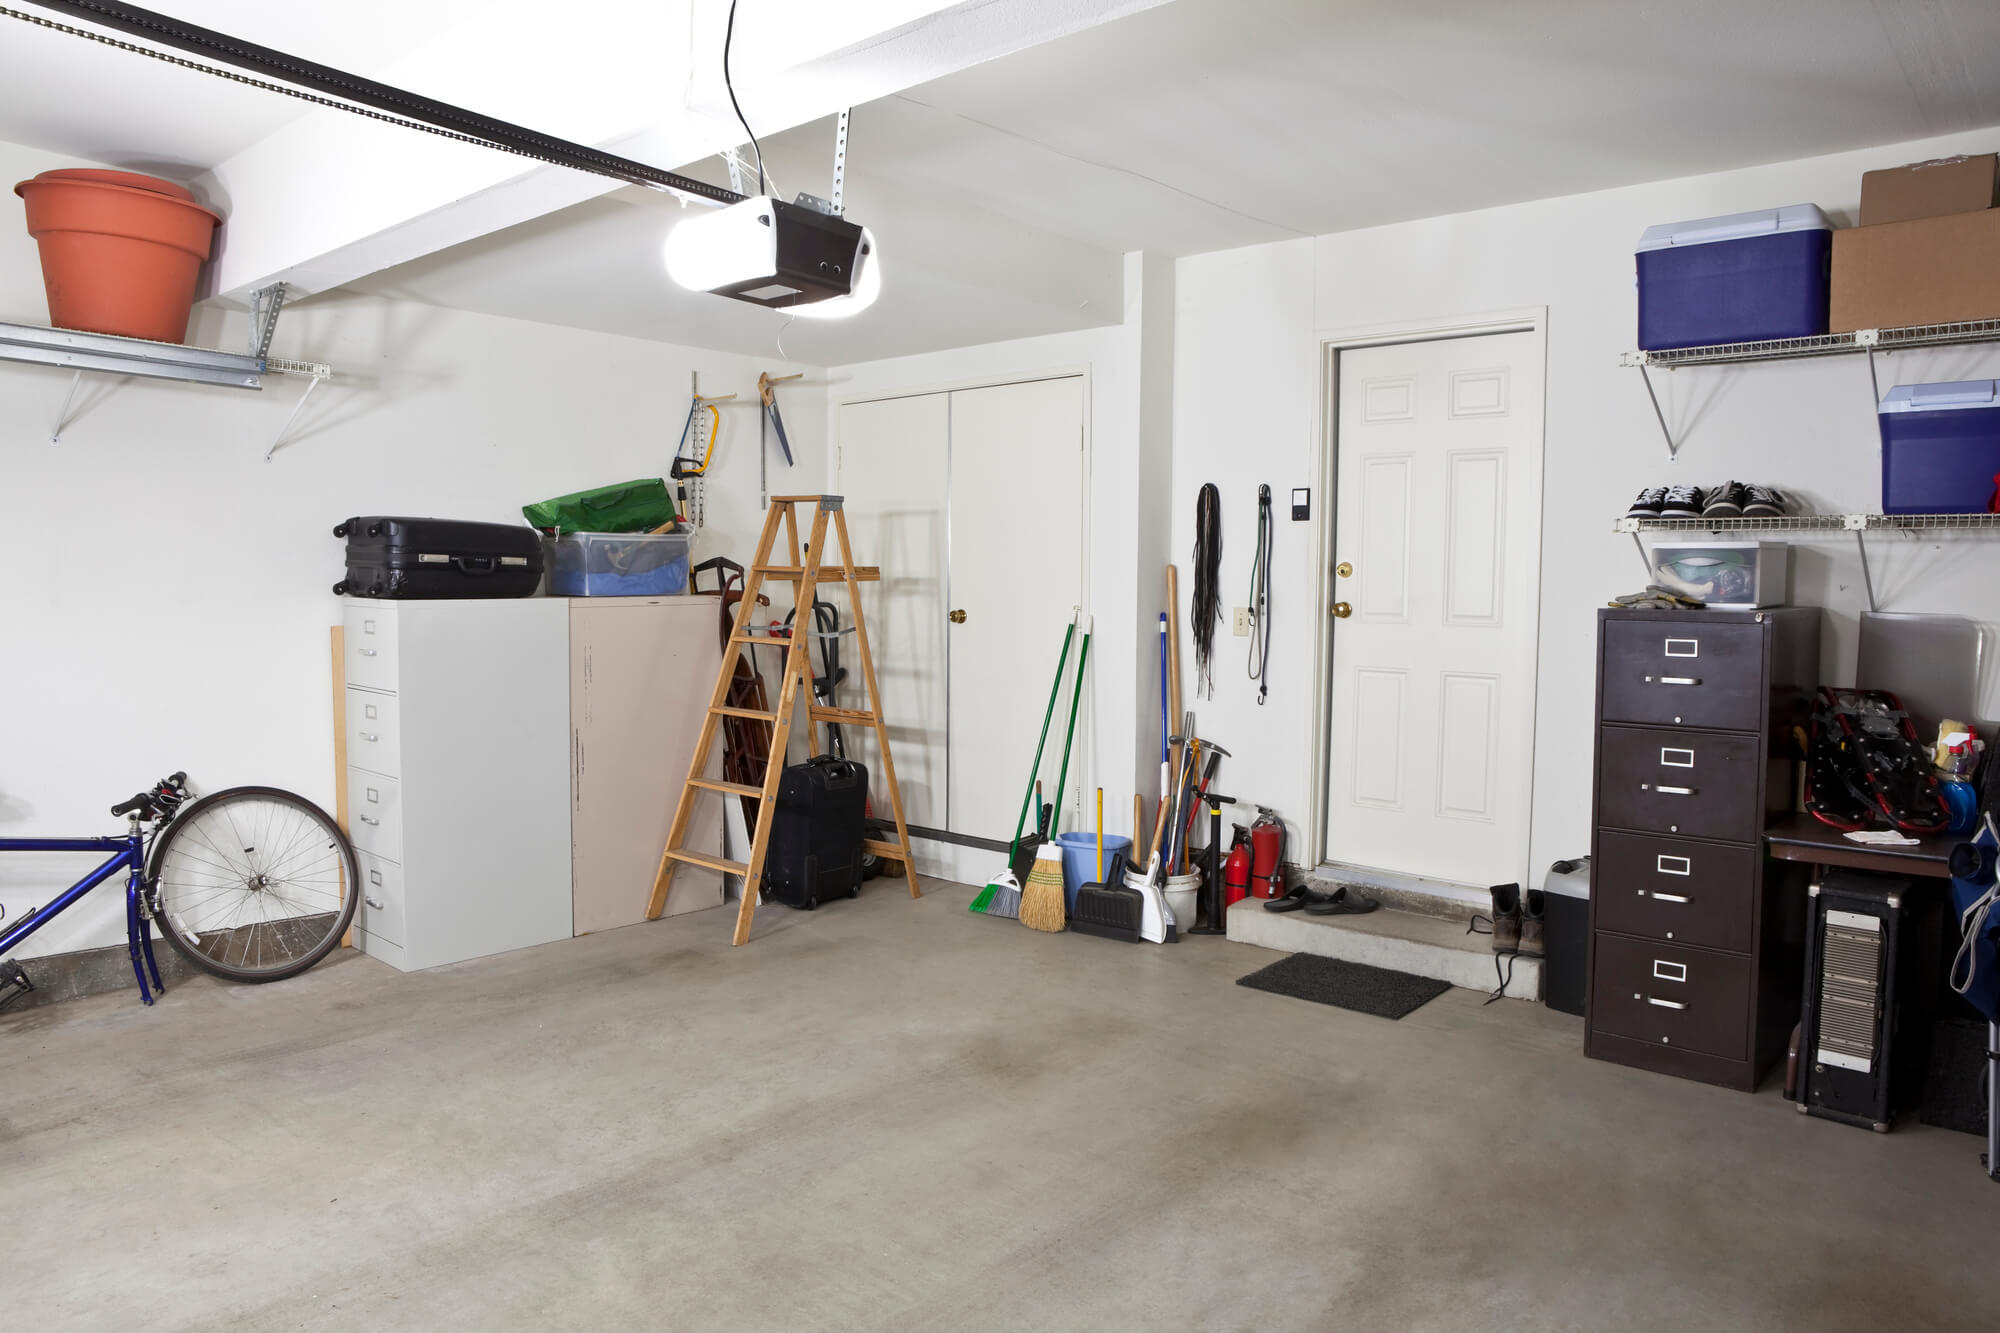 What size armoured cable do I need for my garage?